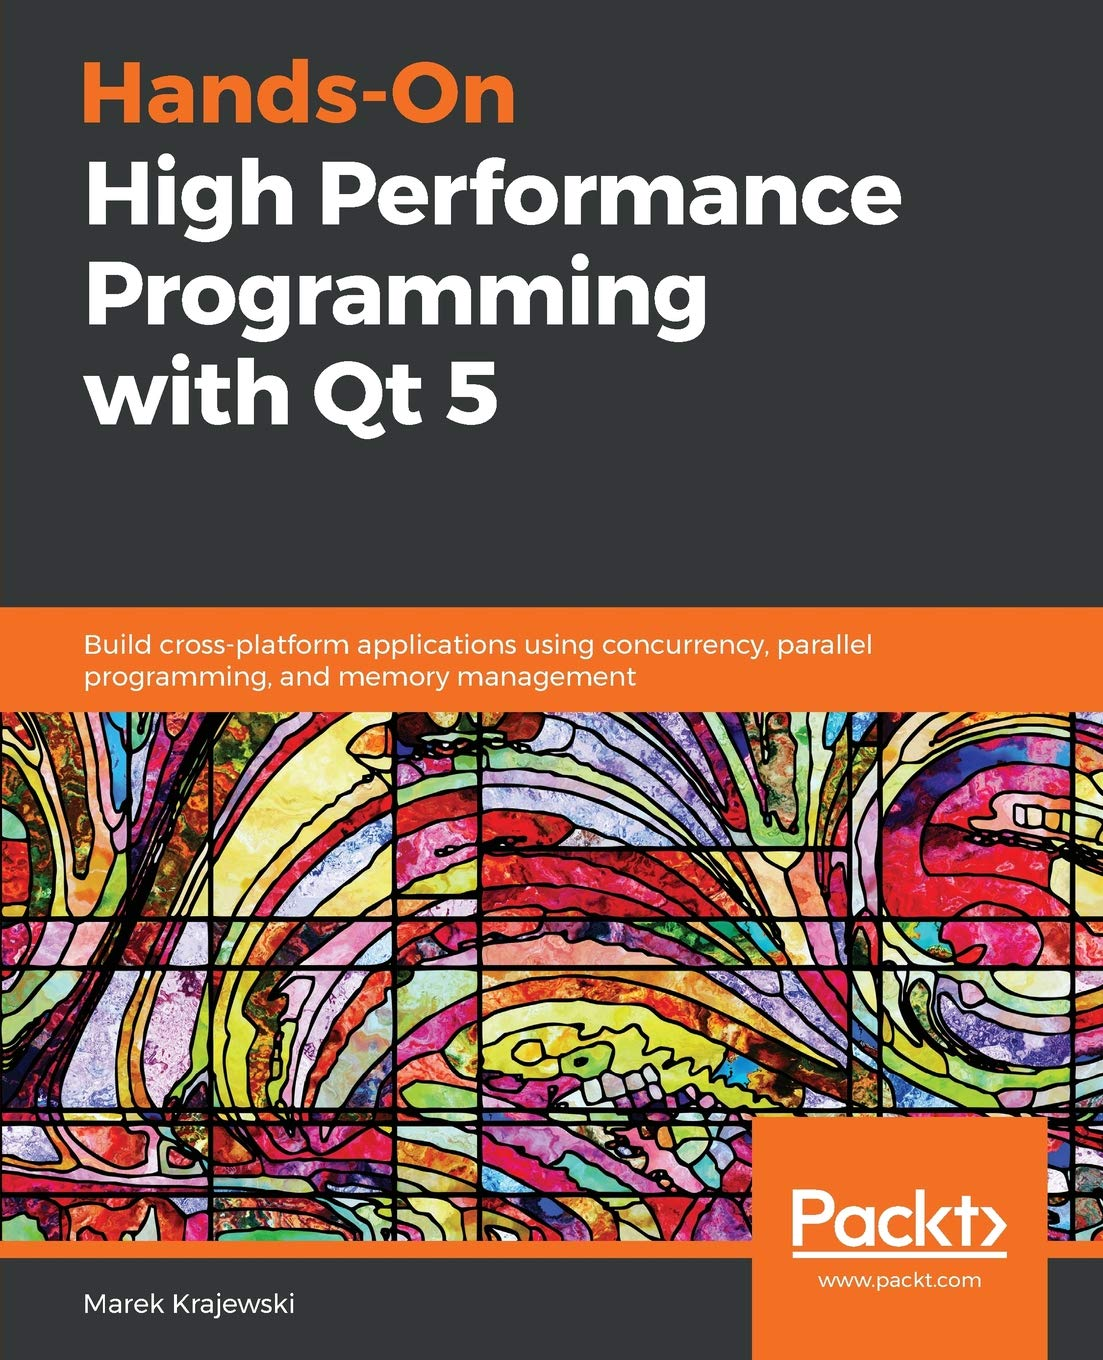 Hands-On High Performance Programming with Qt 5: Build cross